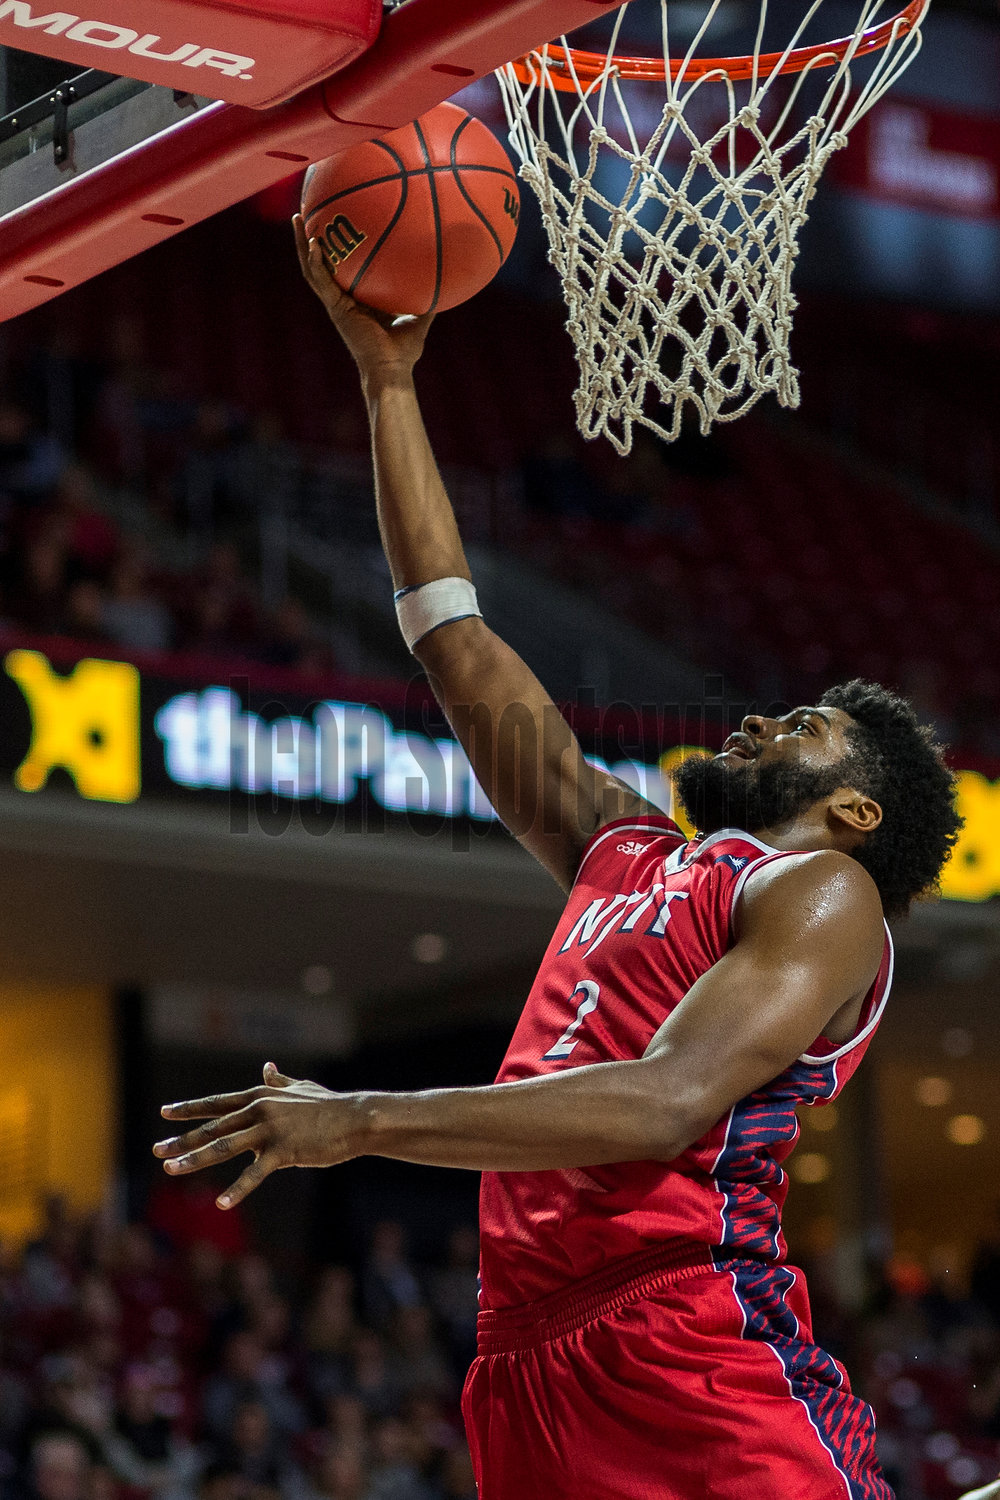 PHILADELPHIA, PA - DECEMBER 17: N.J.I.T Highlanders guard Tim Coleman (2) arcs in his shot during the game between the NJIT Highlanders and the Temple Owls on December 17, 2016 at the Liacouras Center in Philadelphia PA. (Photo by Gavin Baker/Icon Sportswire)